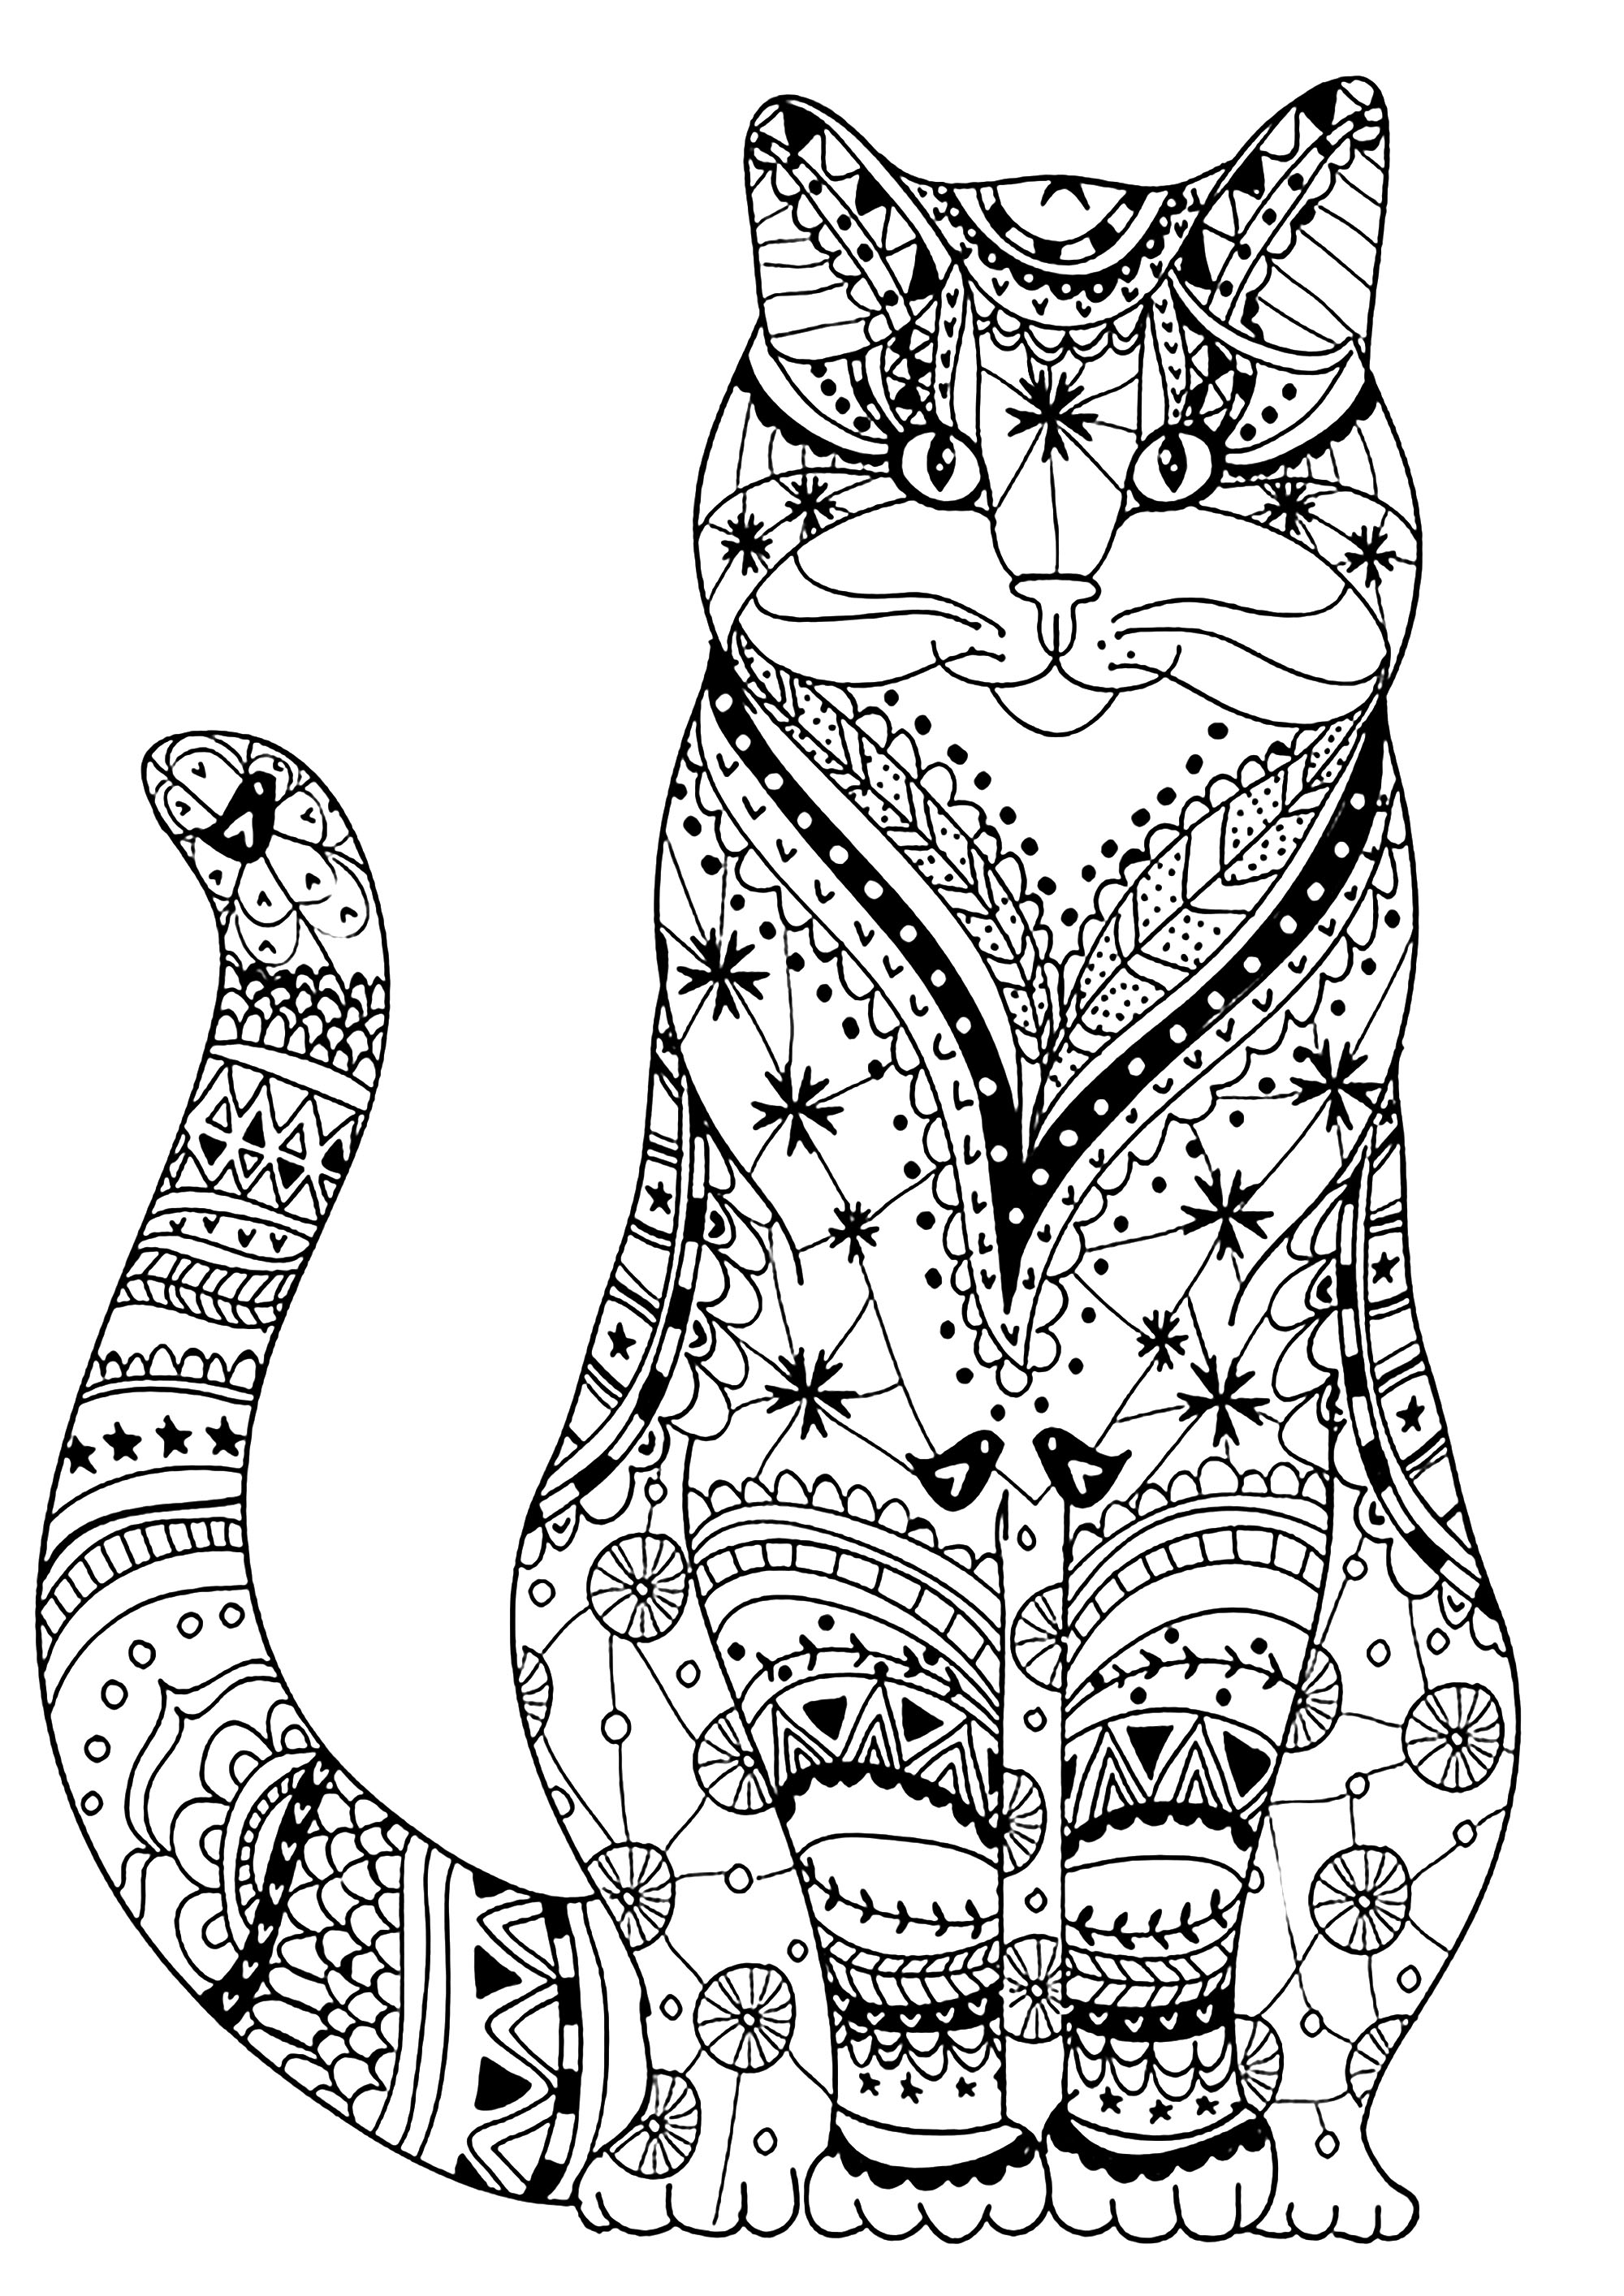 cat coloring pictures free printable cat coloring pages for kids cat coloring pictures